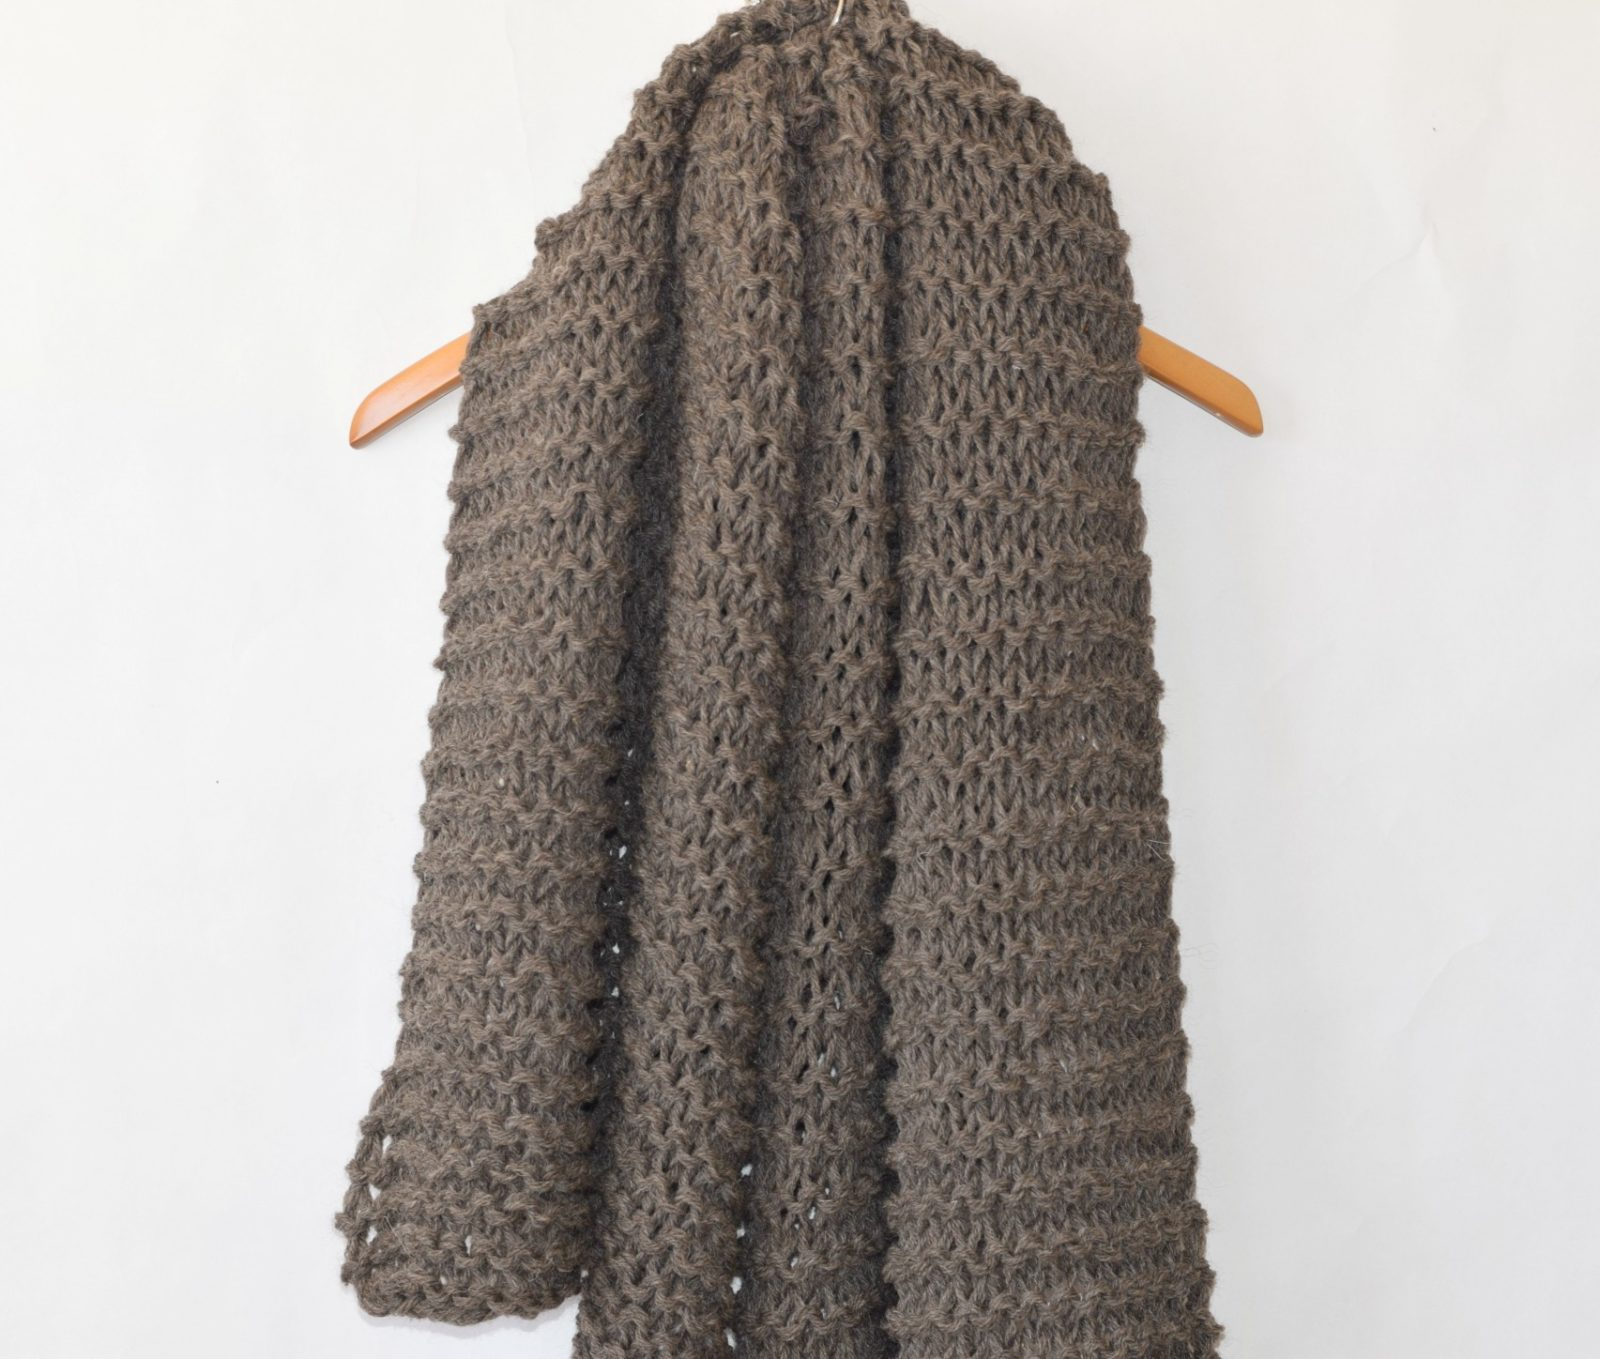 Knitted Shawl Patterns For Beginners : Big Beginner Knit Shawl - Scarf Pattern   Mama In A Stitch